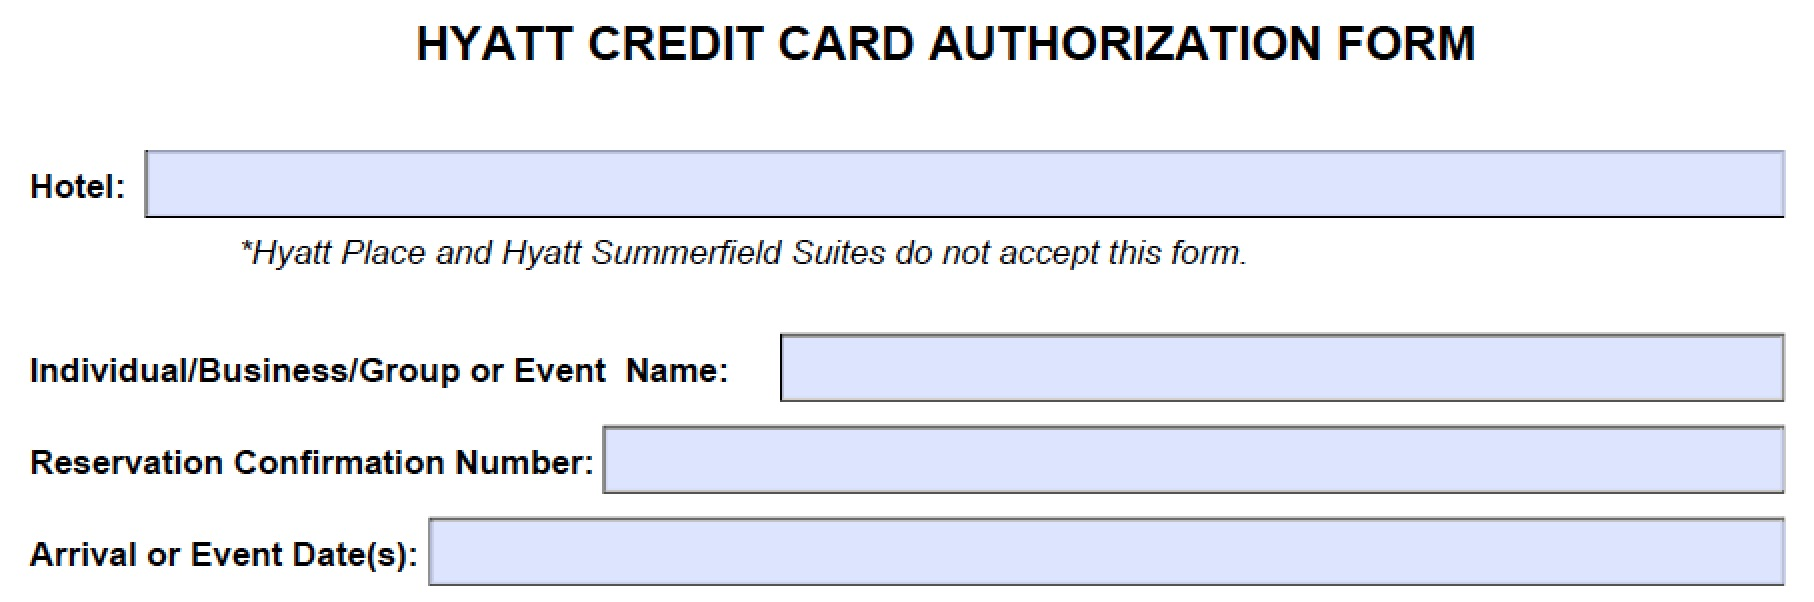 download hyatt credit card authorization form template